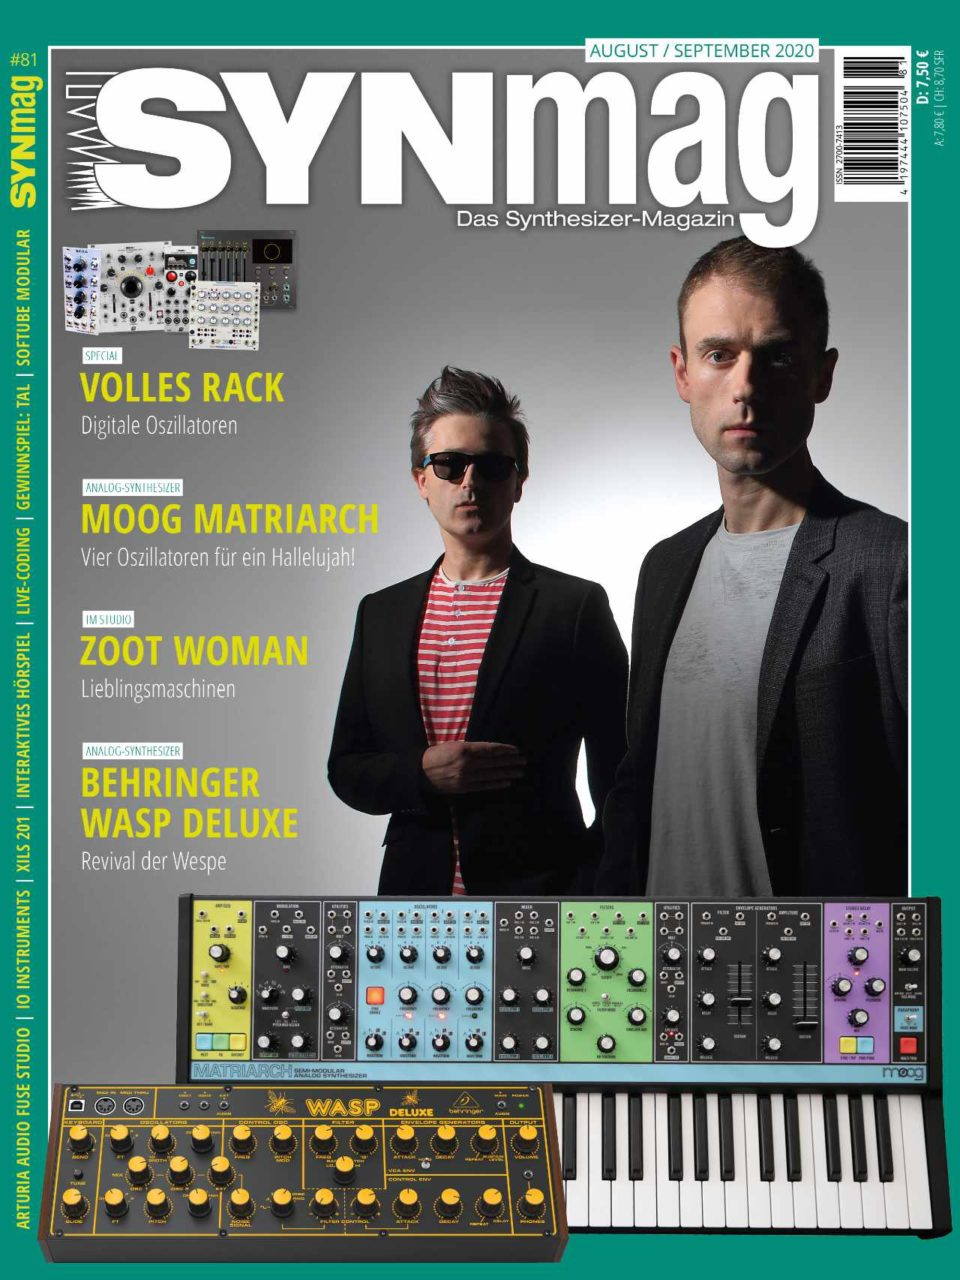 synmag 81 das synthesizer-magazin